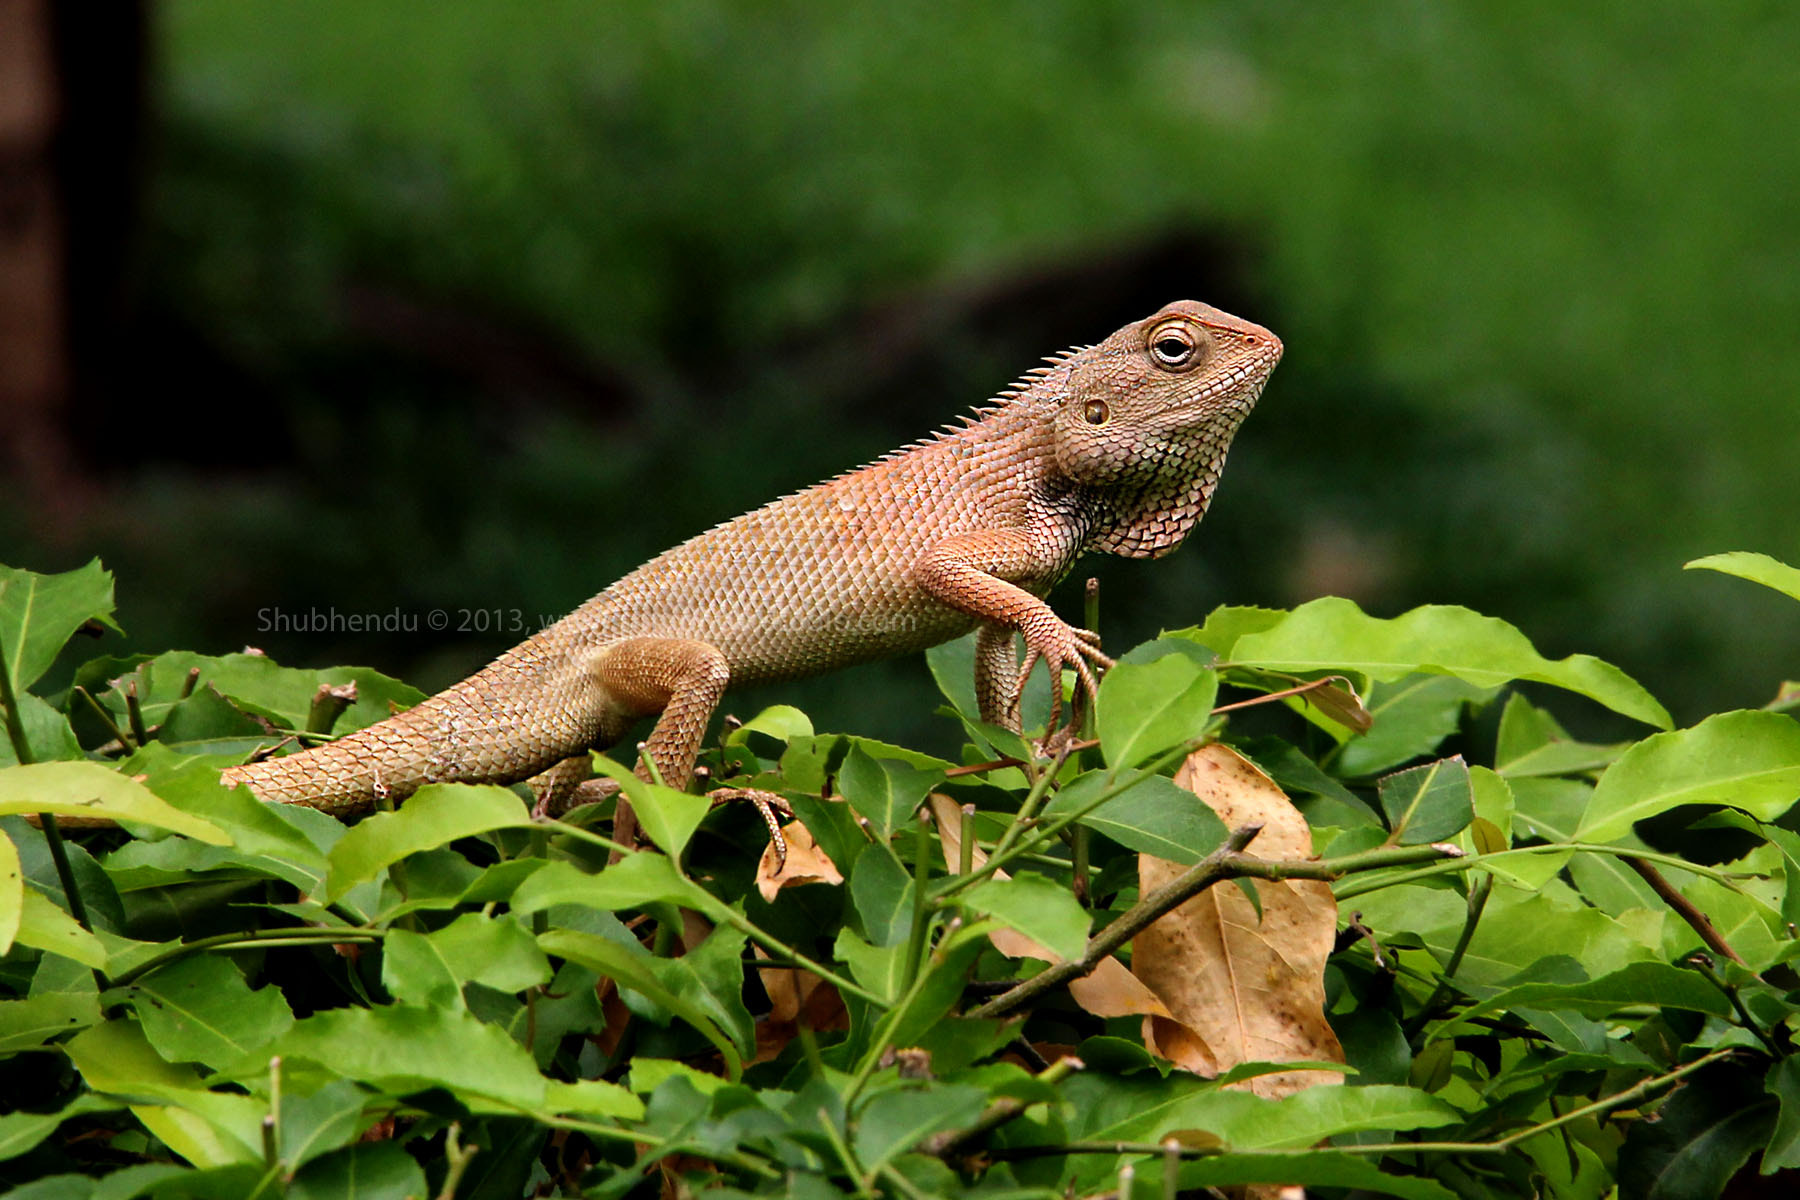 Photograph commom garden lizard... by Shubhendu Bikash Mazumder on 500px